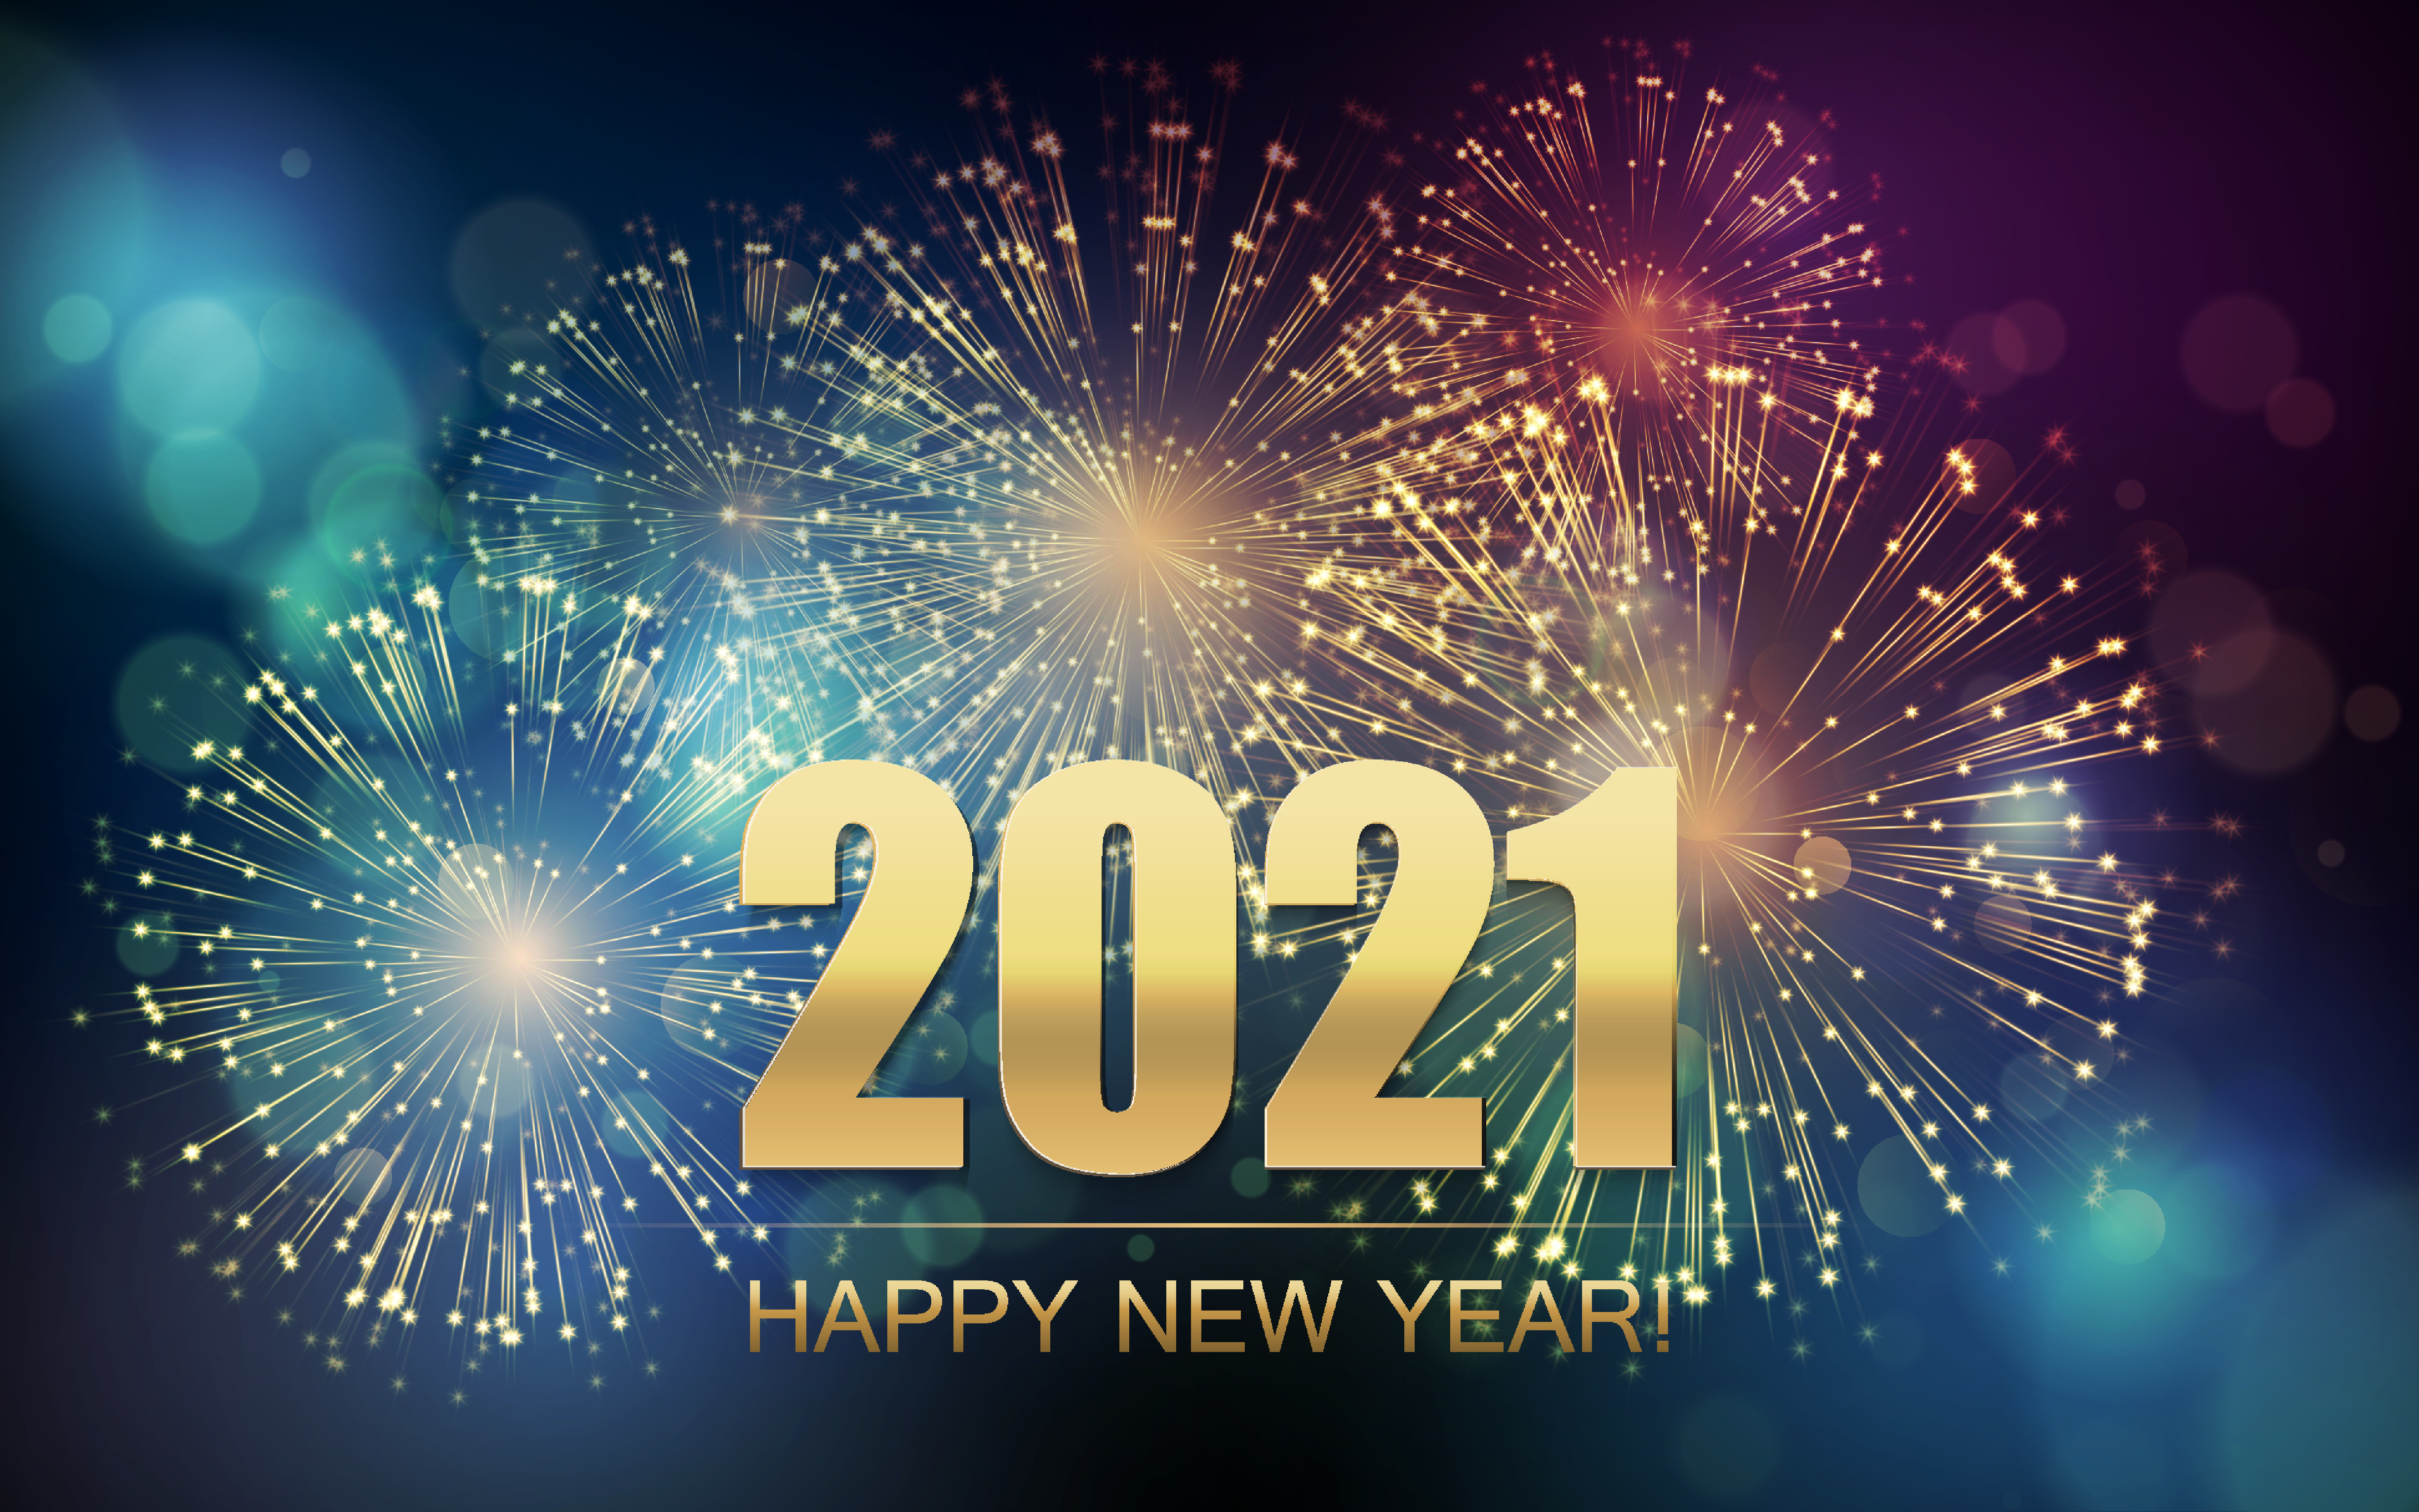 2021 New Year Abstract background with fireworks.